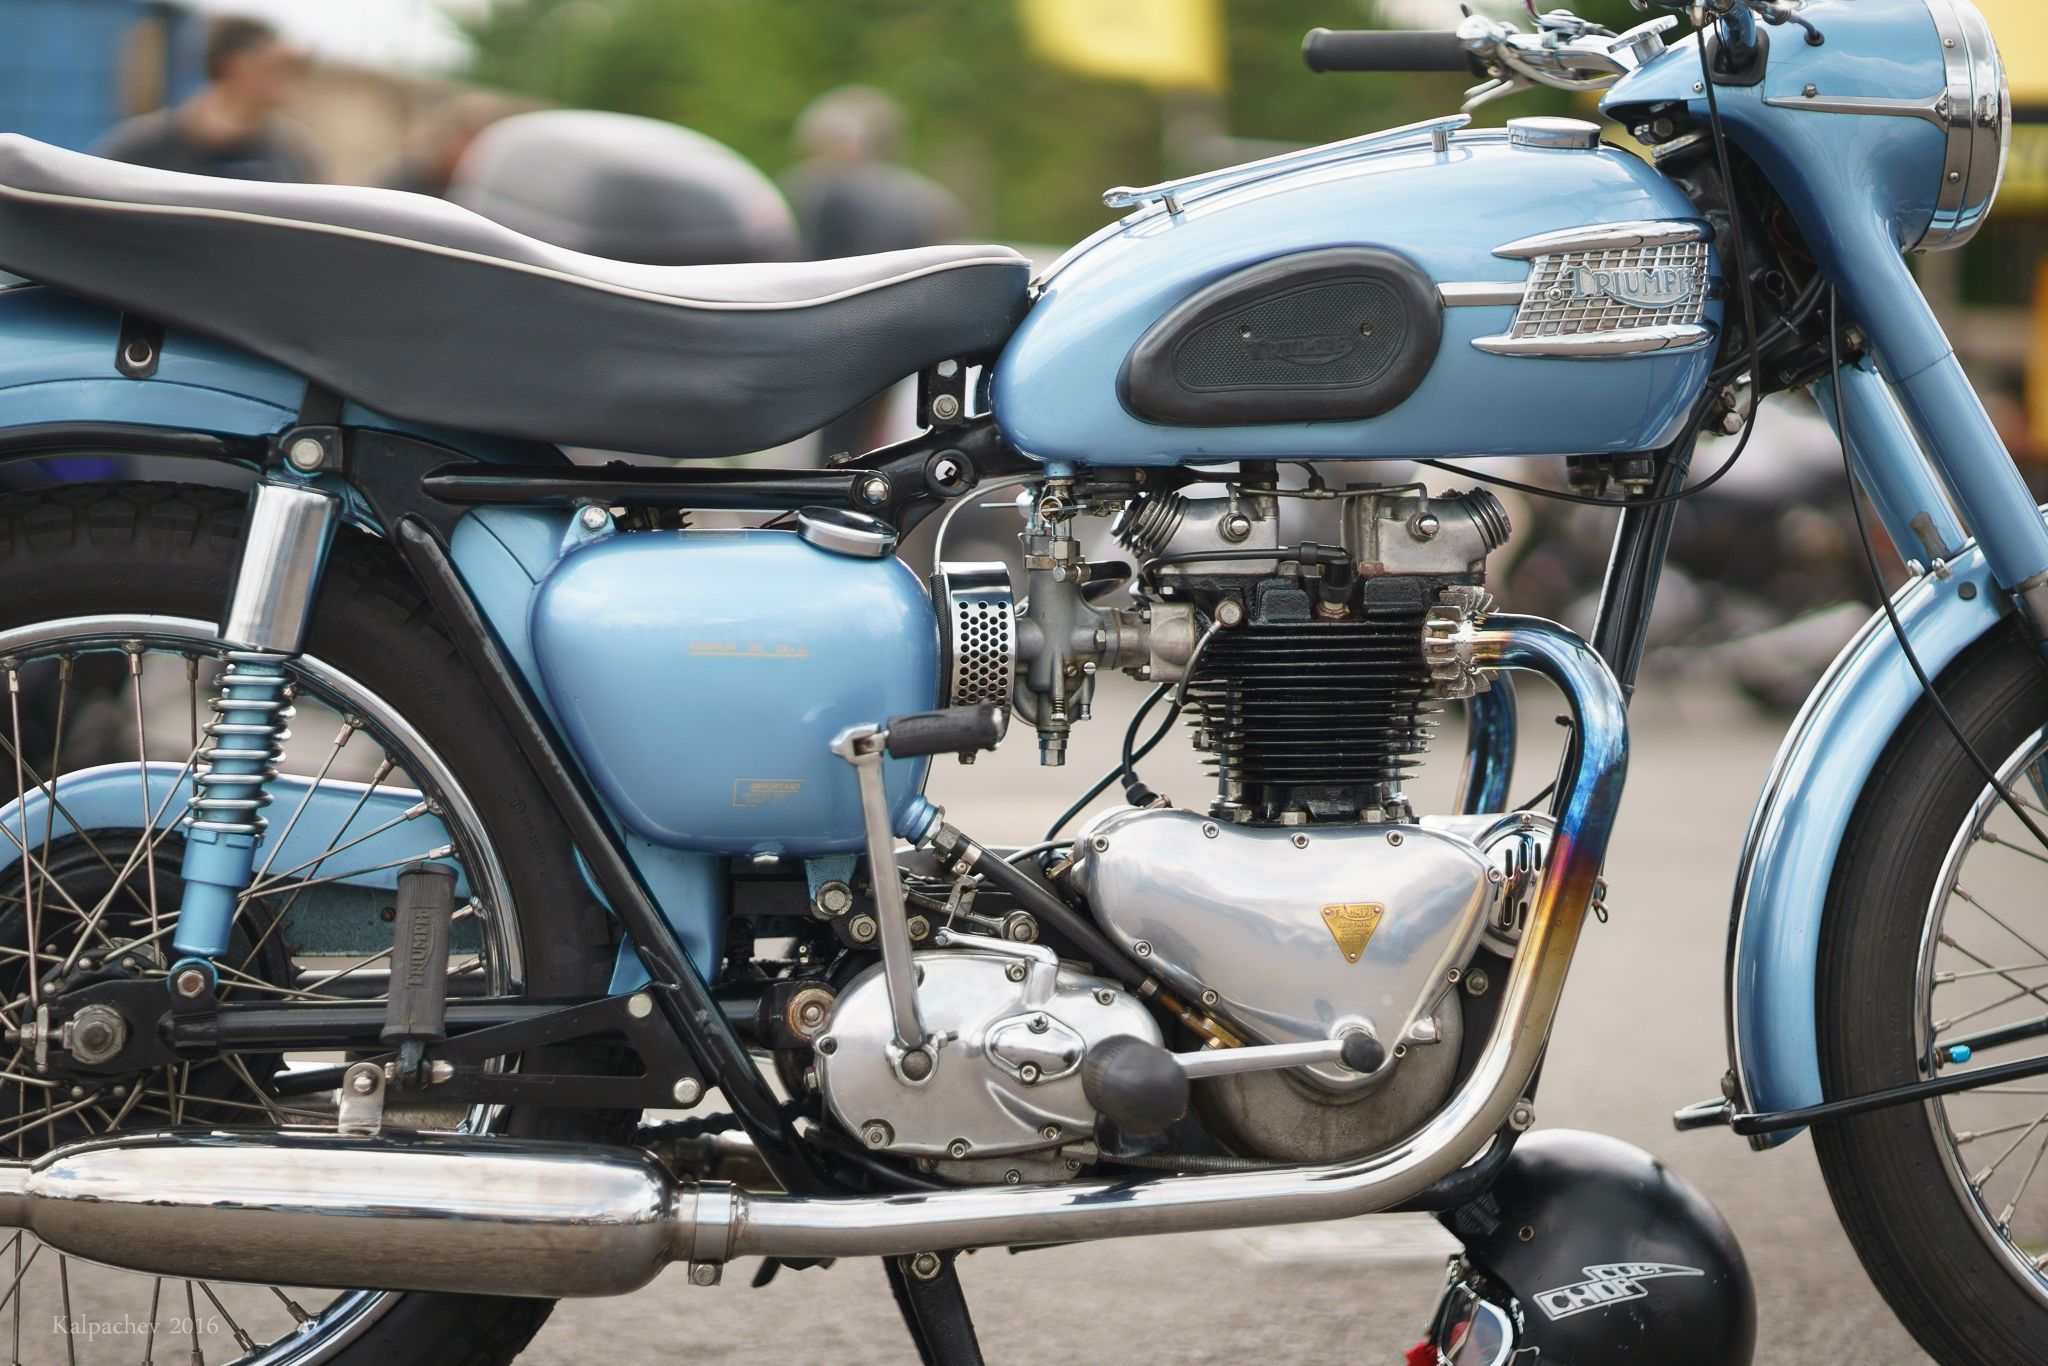 Cafe Racer @acecafelondon #caferacer #motorcycle